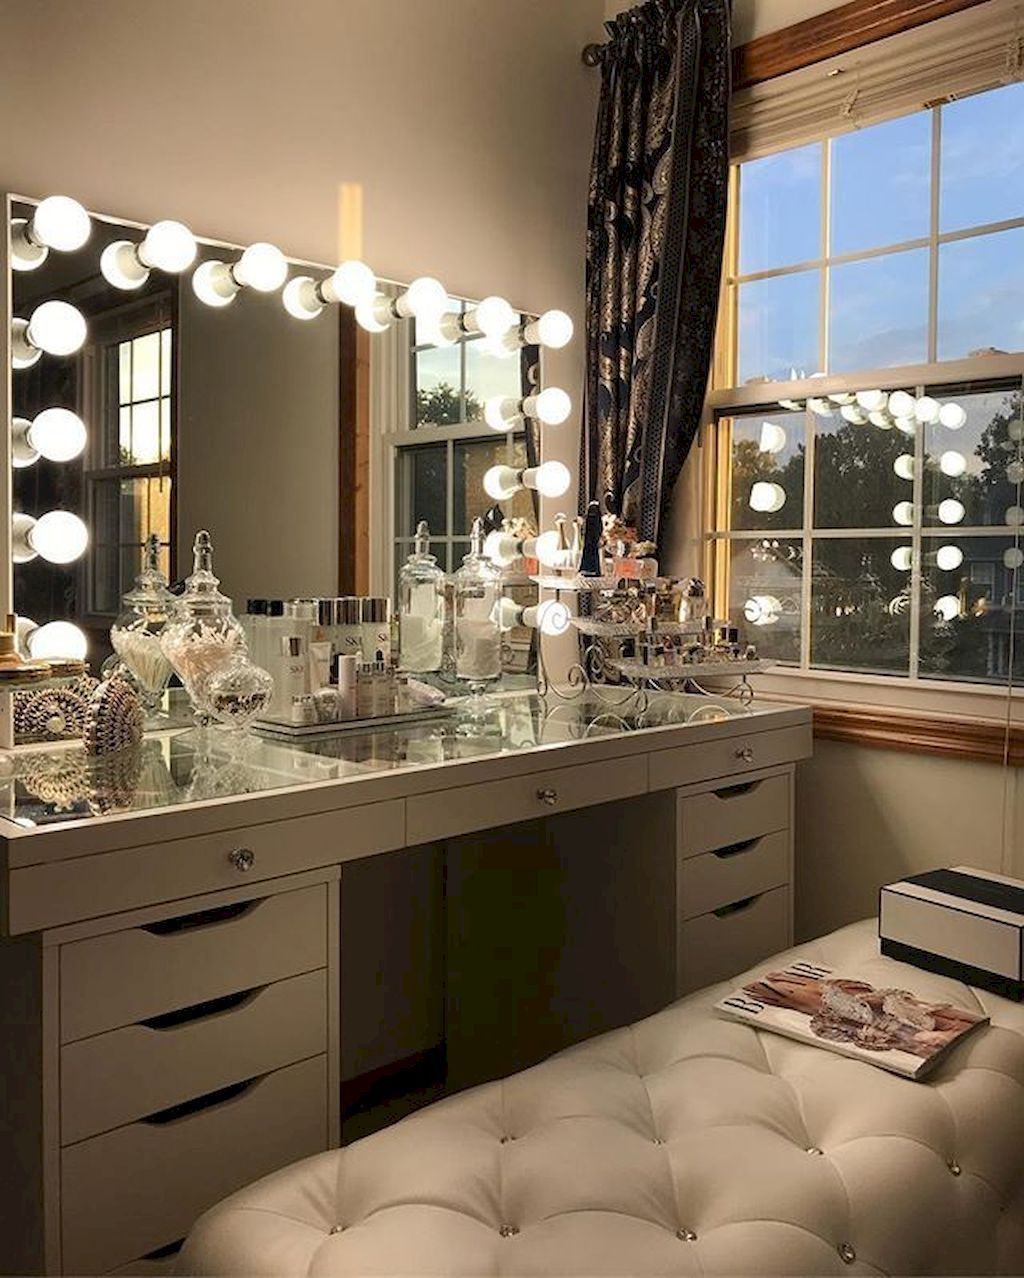 10 vanity mirrors with light ideas you need to spruce up